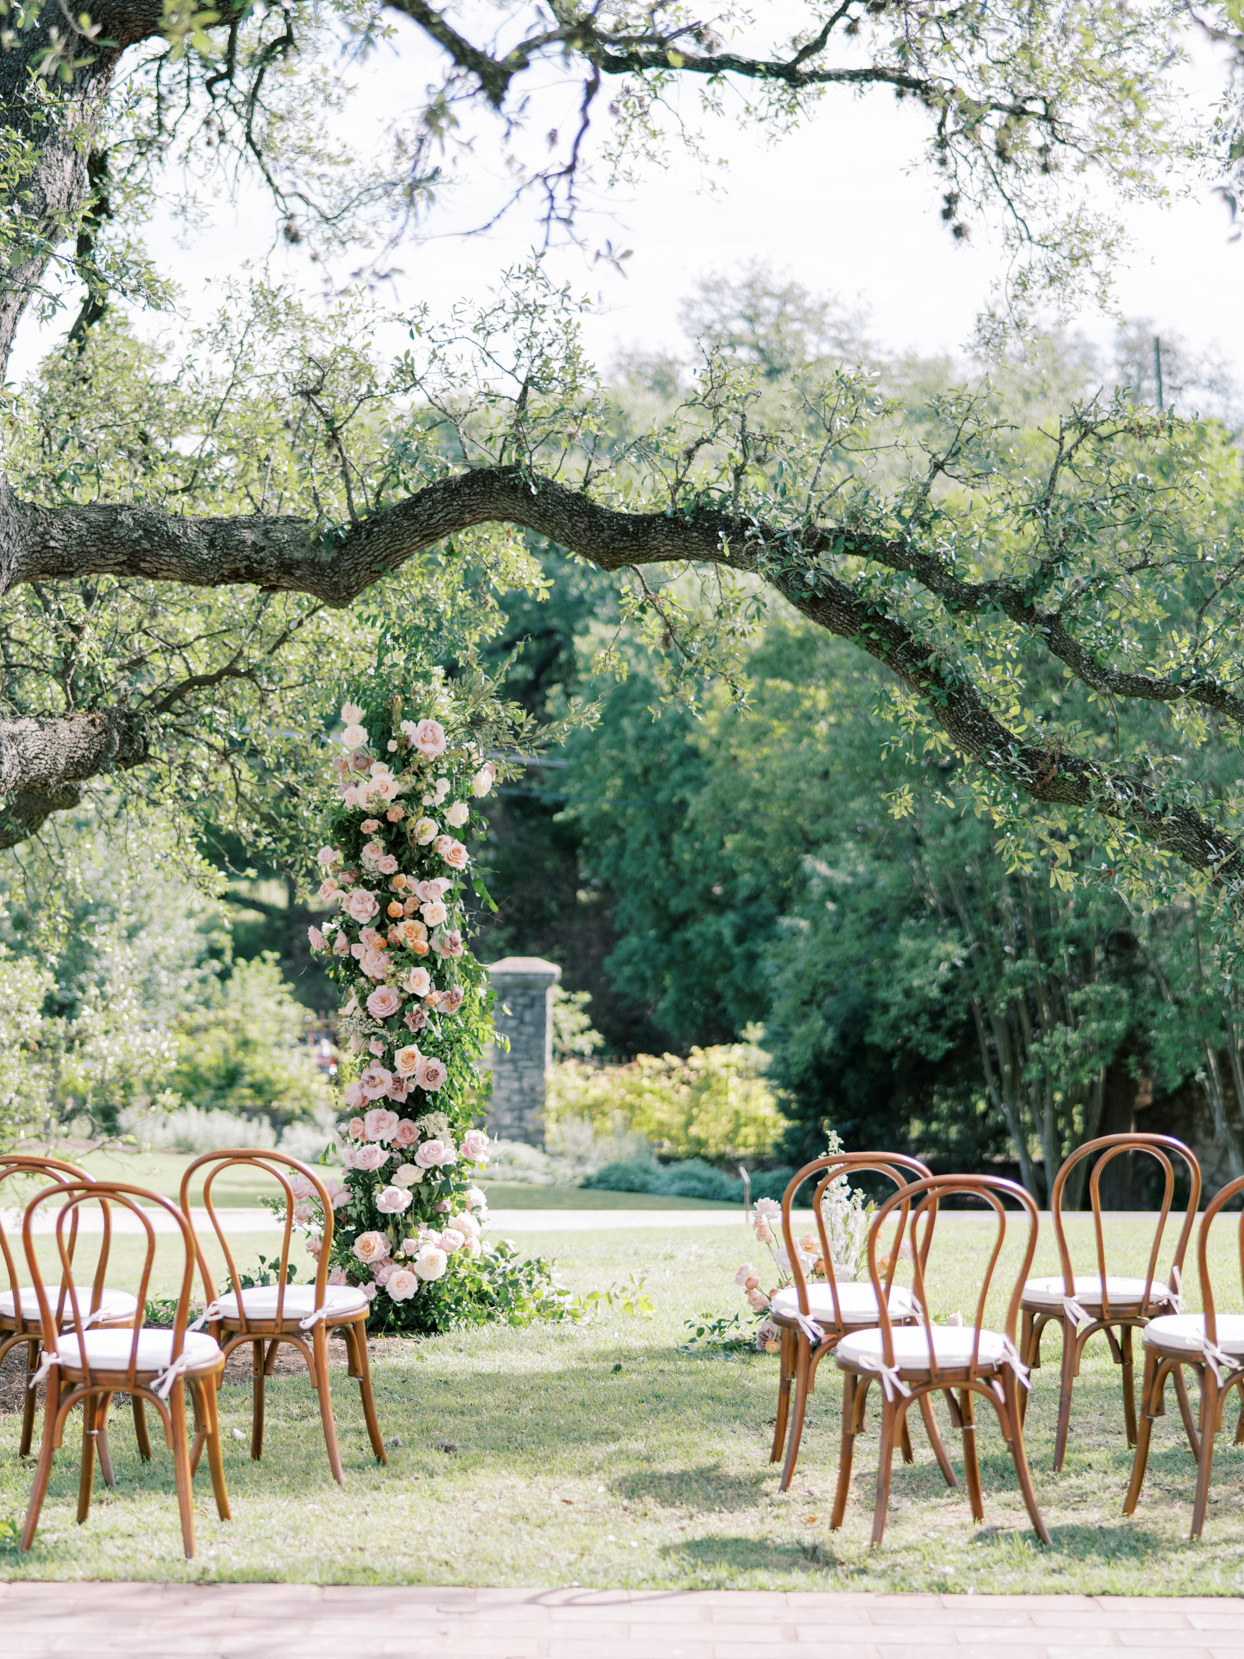 outdoor wedding ceremony location with wooden chairs and floral arch